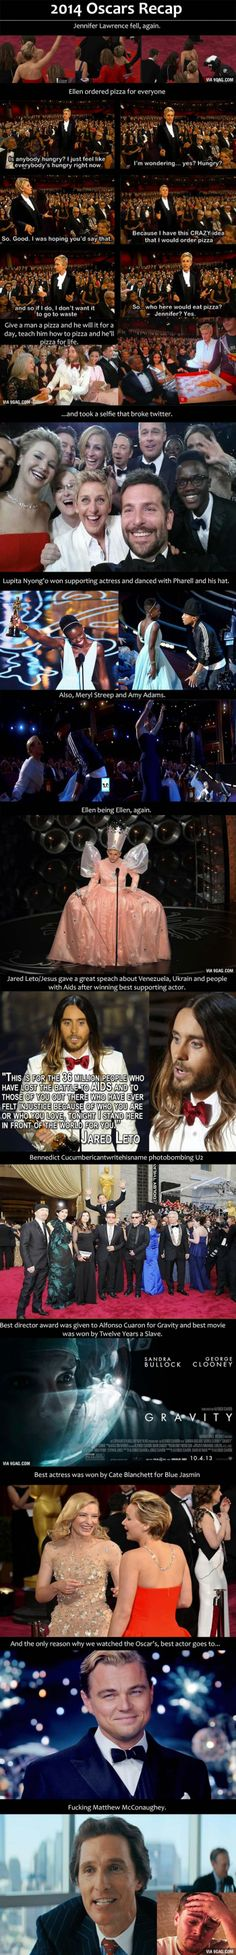 2014 Oscars Recap, pardon the language. But this was probably the best one with Ellen hosting:-)